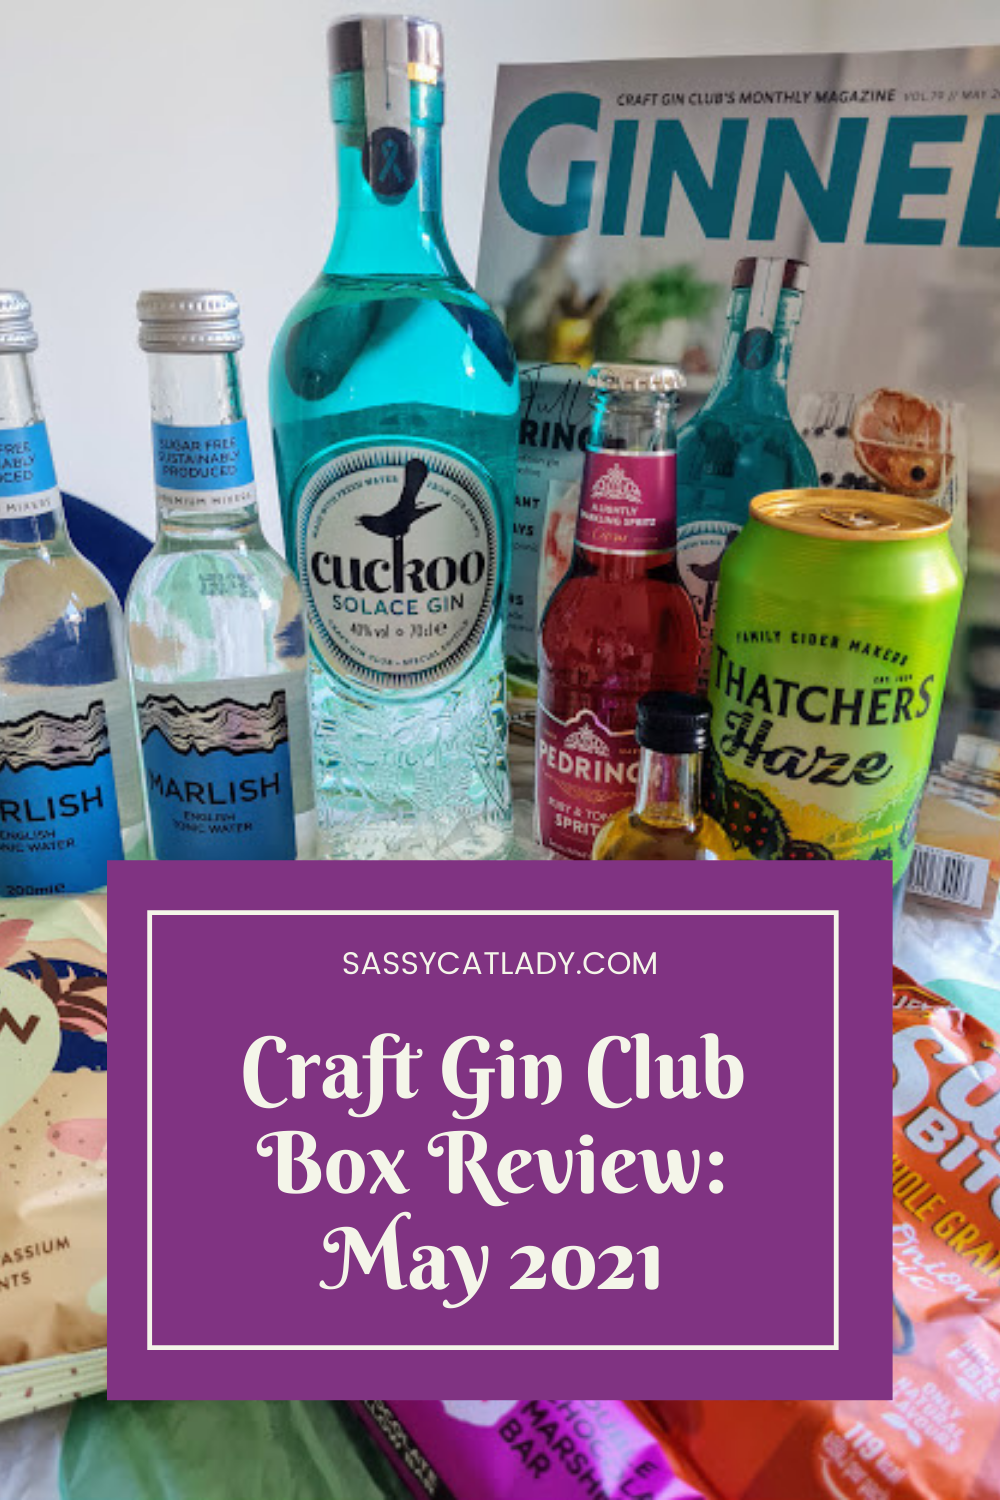 Craft Gin Club Box Review - May 2021 Pinterest Graphic